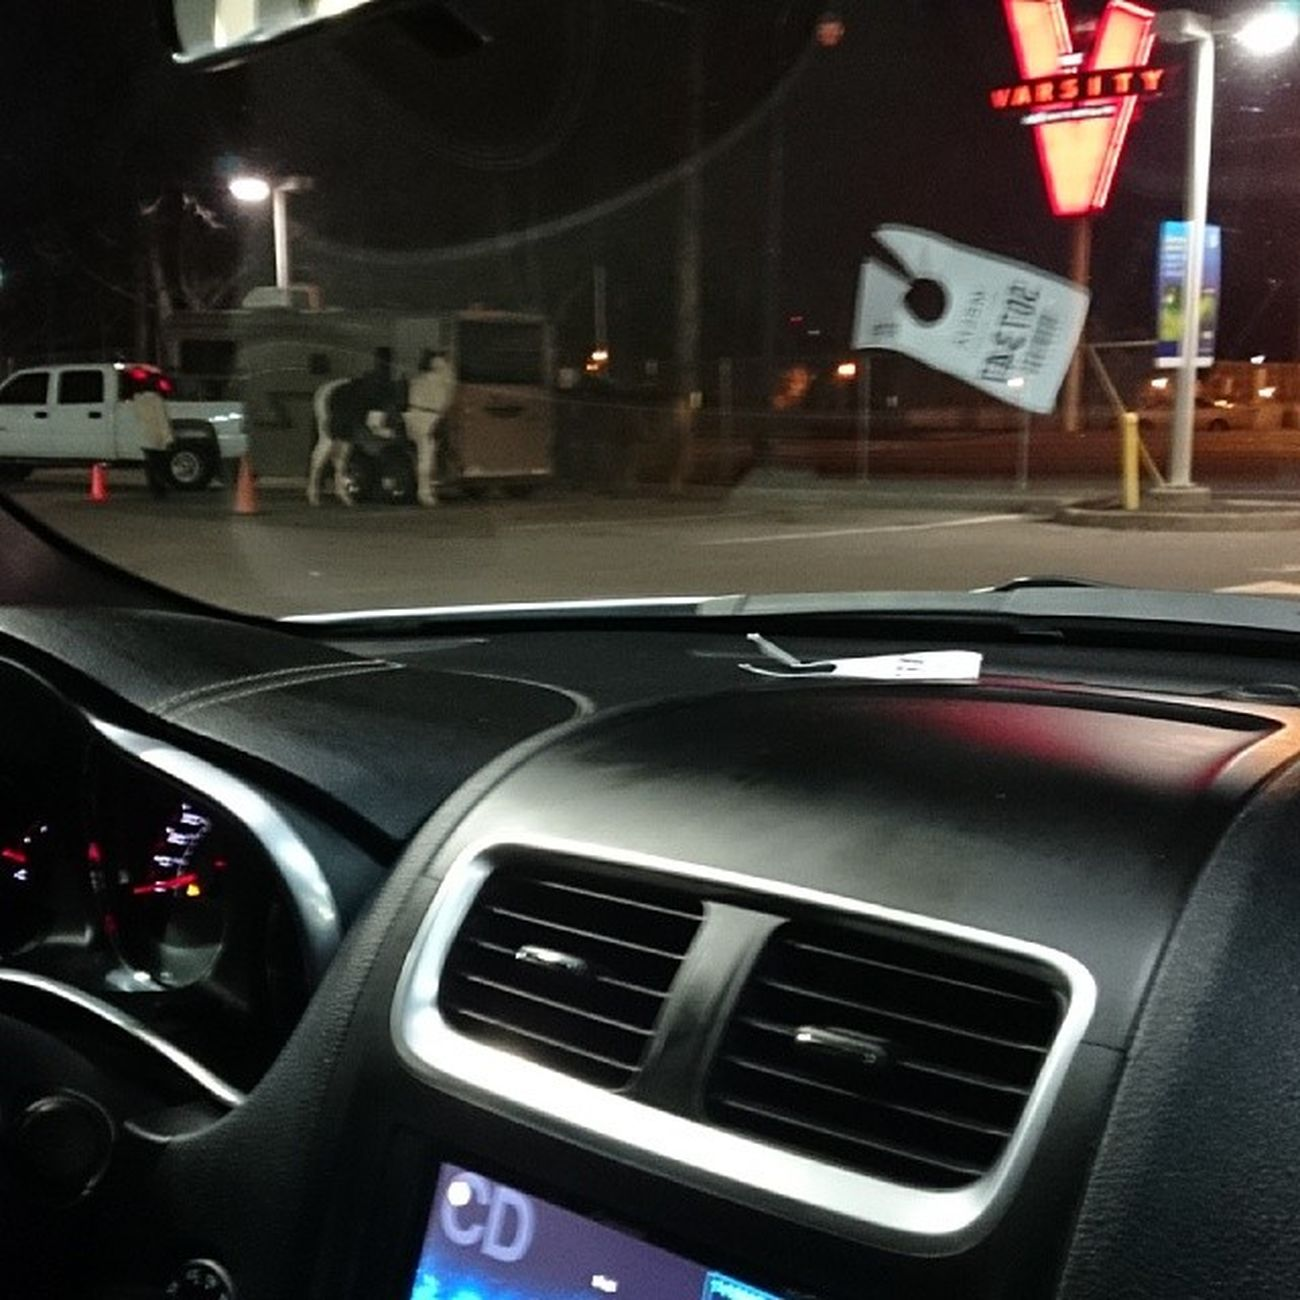 Pull up n it's whole horses chilling at the gas station AtlantaNights